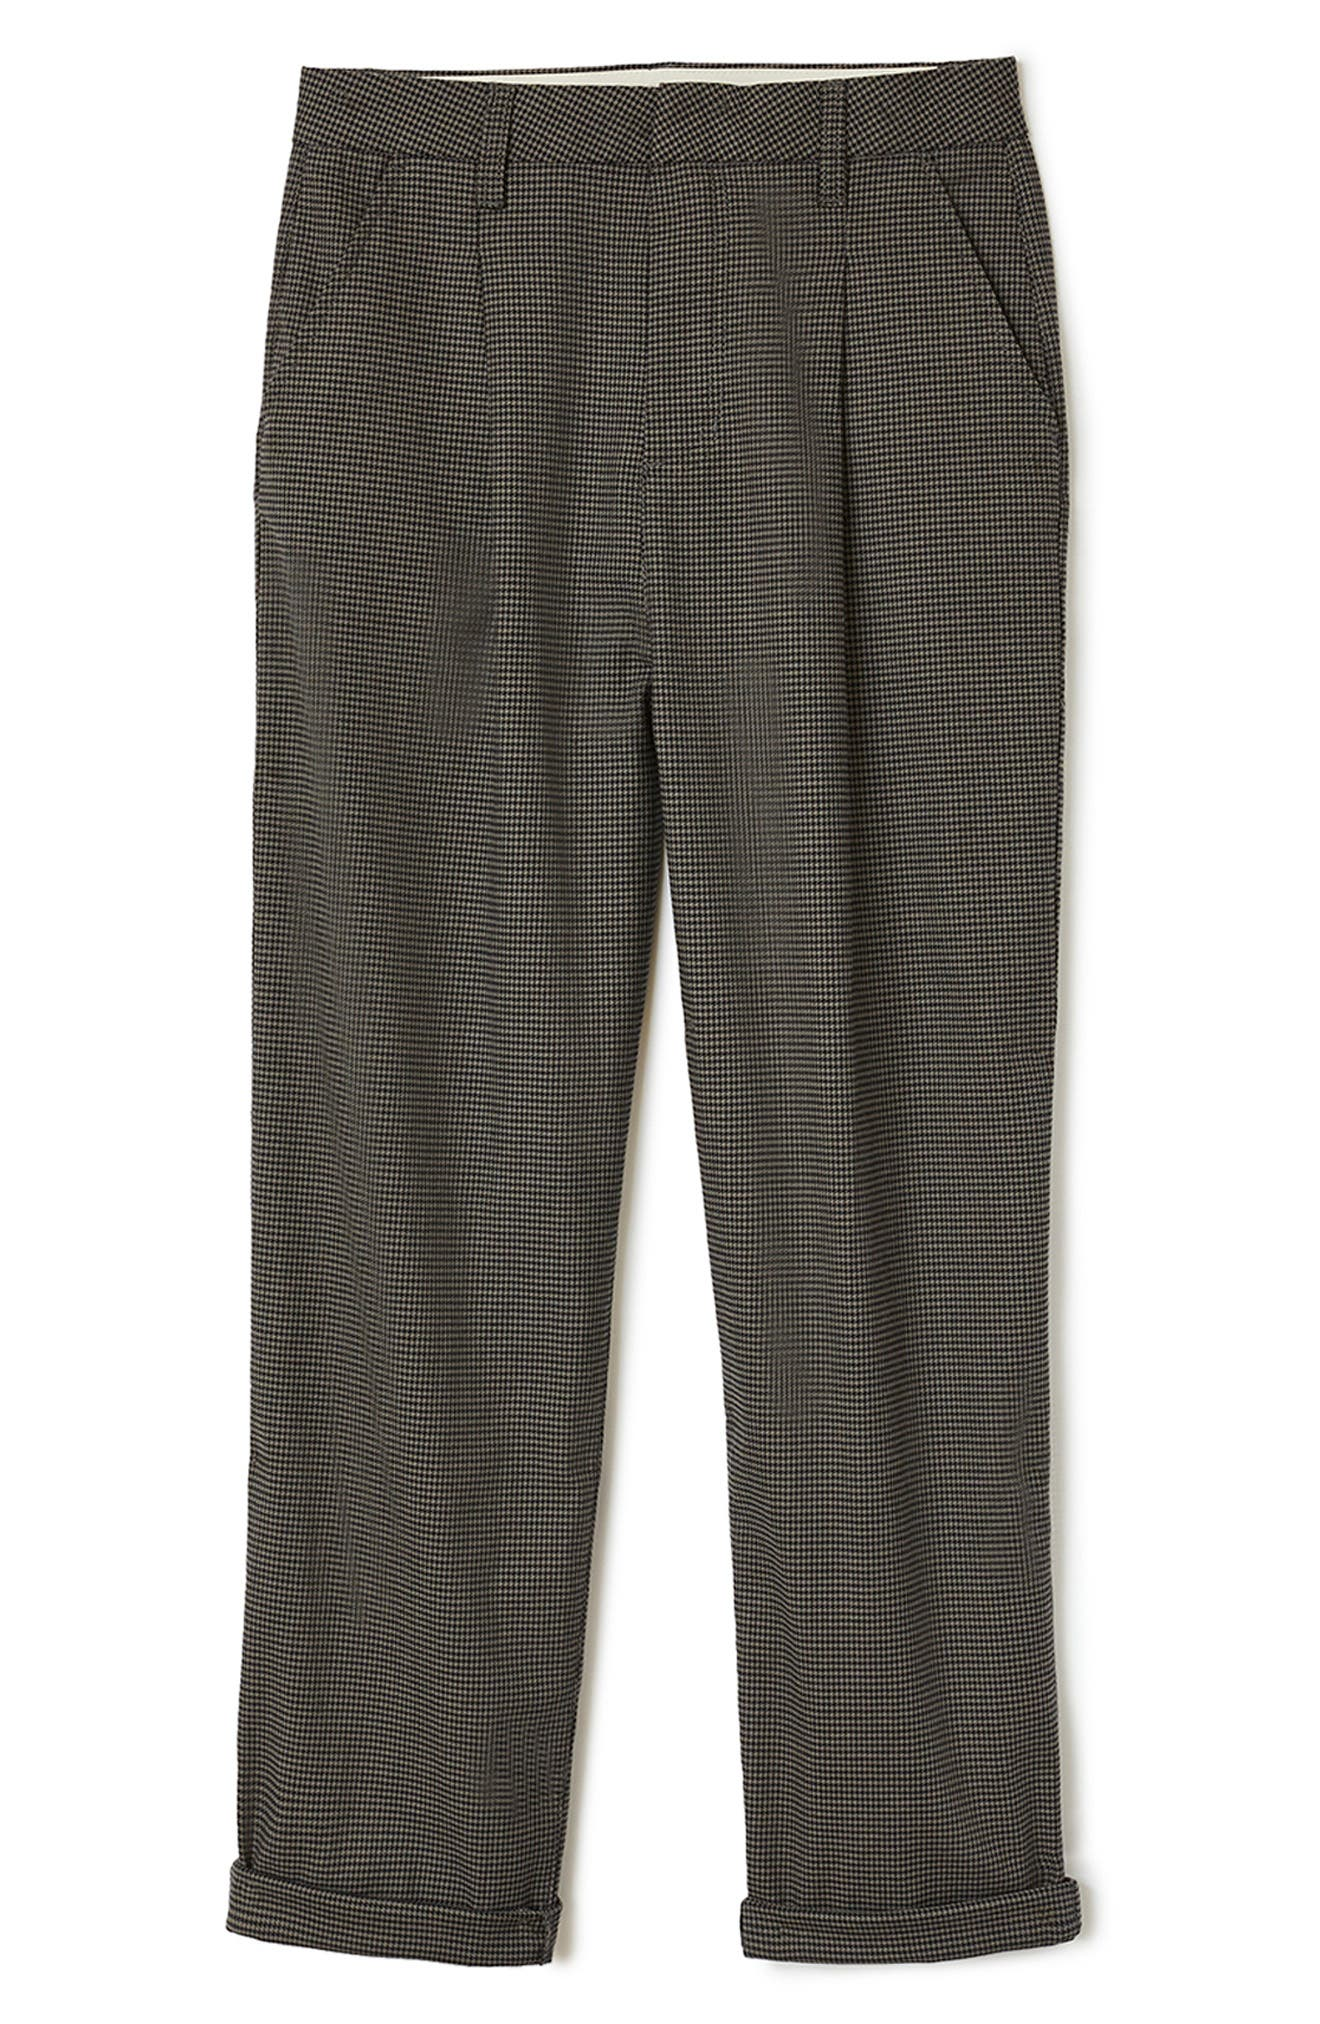 Victory High Waist Wide Leg Ankle Pants